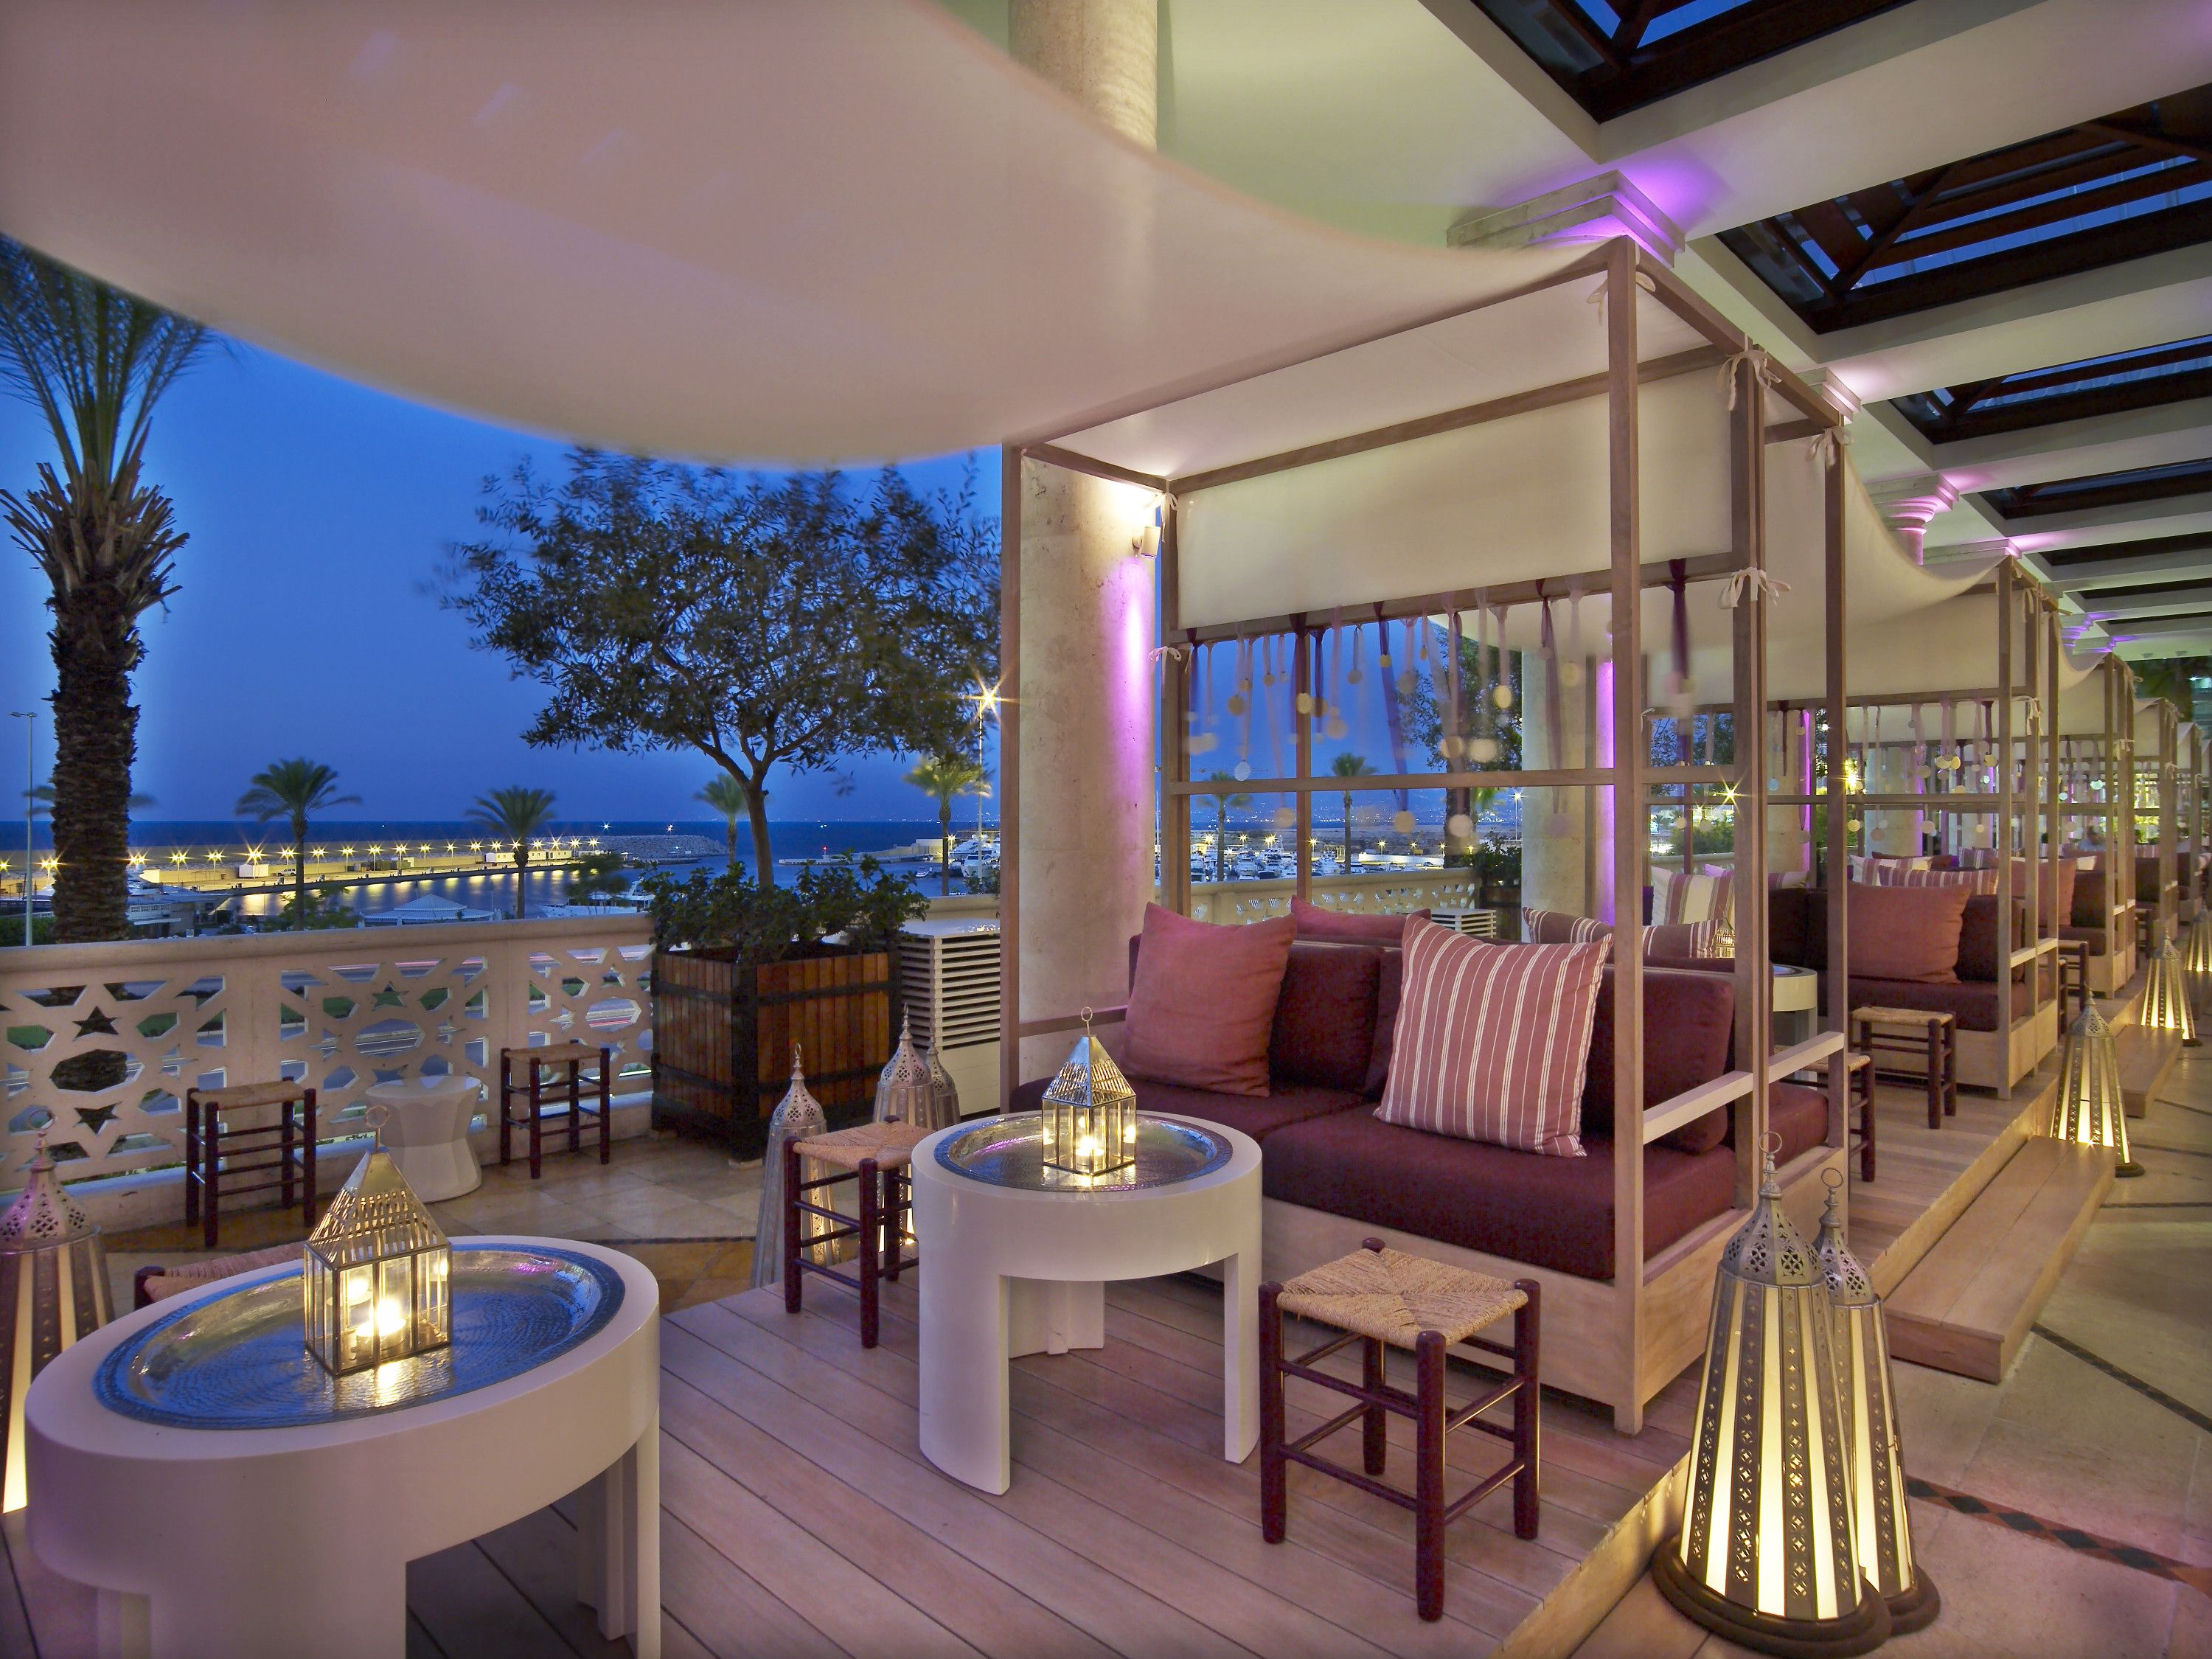 The Phoenicia Hotel In Beirut Lebanon An Amazing Place Hotel